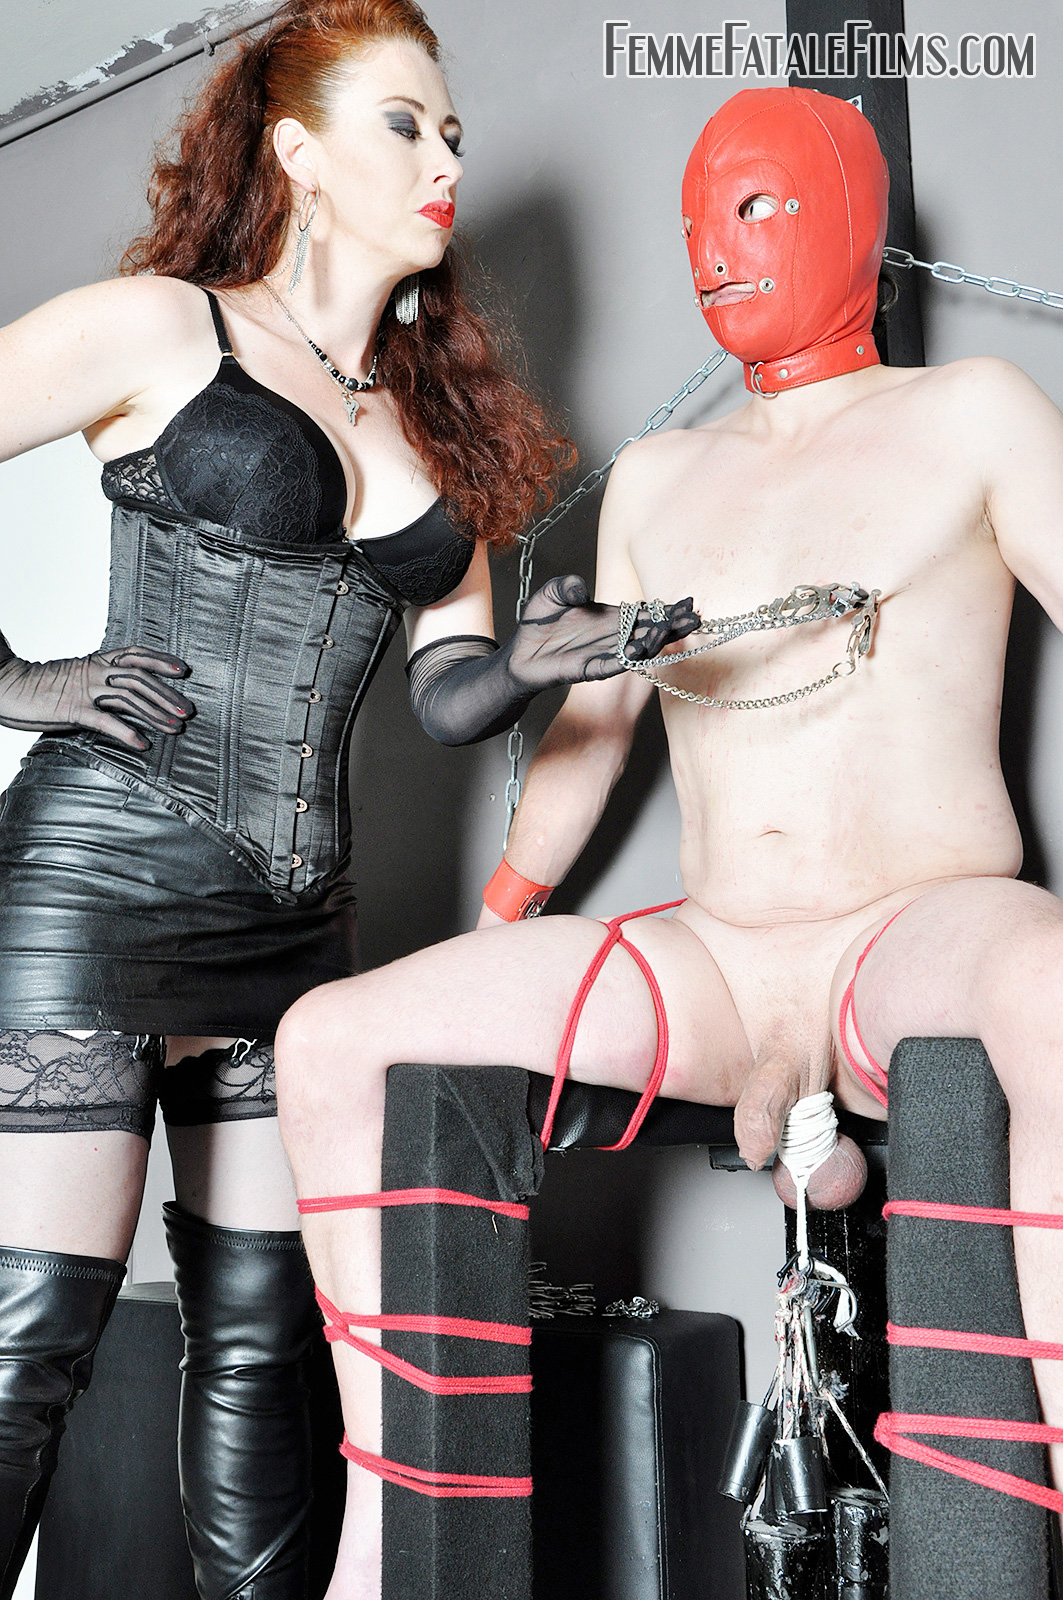 Lady Renee's Cock and Ball Torture